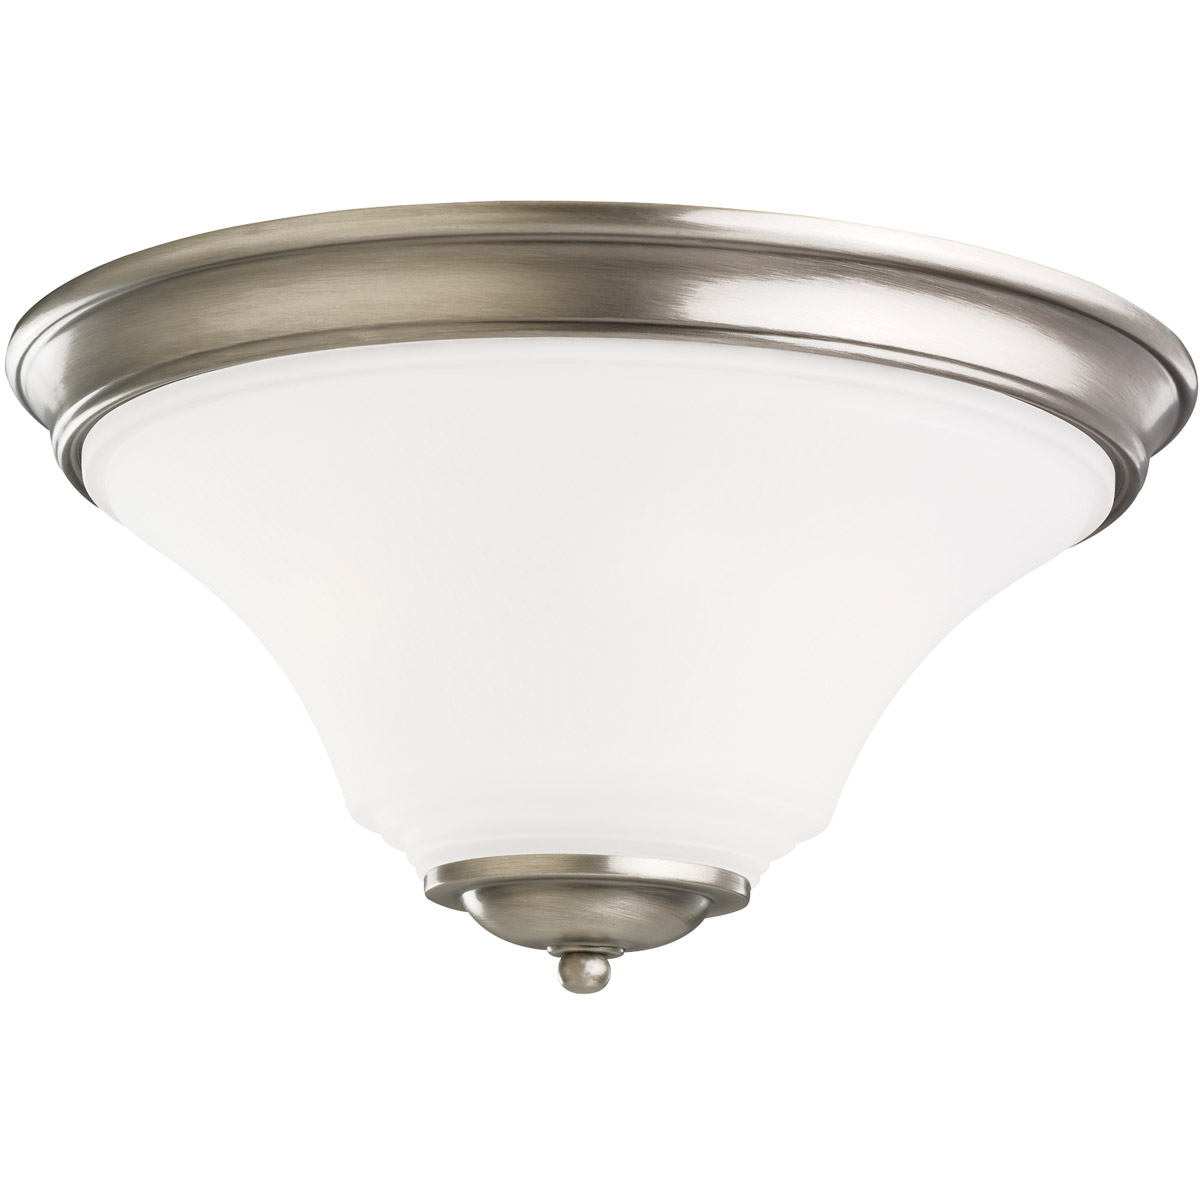 Sea Gull 75375-965 Somerton 2 Light 15 inch Antique Brushed Nickel Flush Mount Ceiling Light in Satin Etched Glass, Standard photo